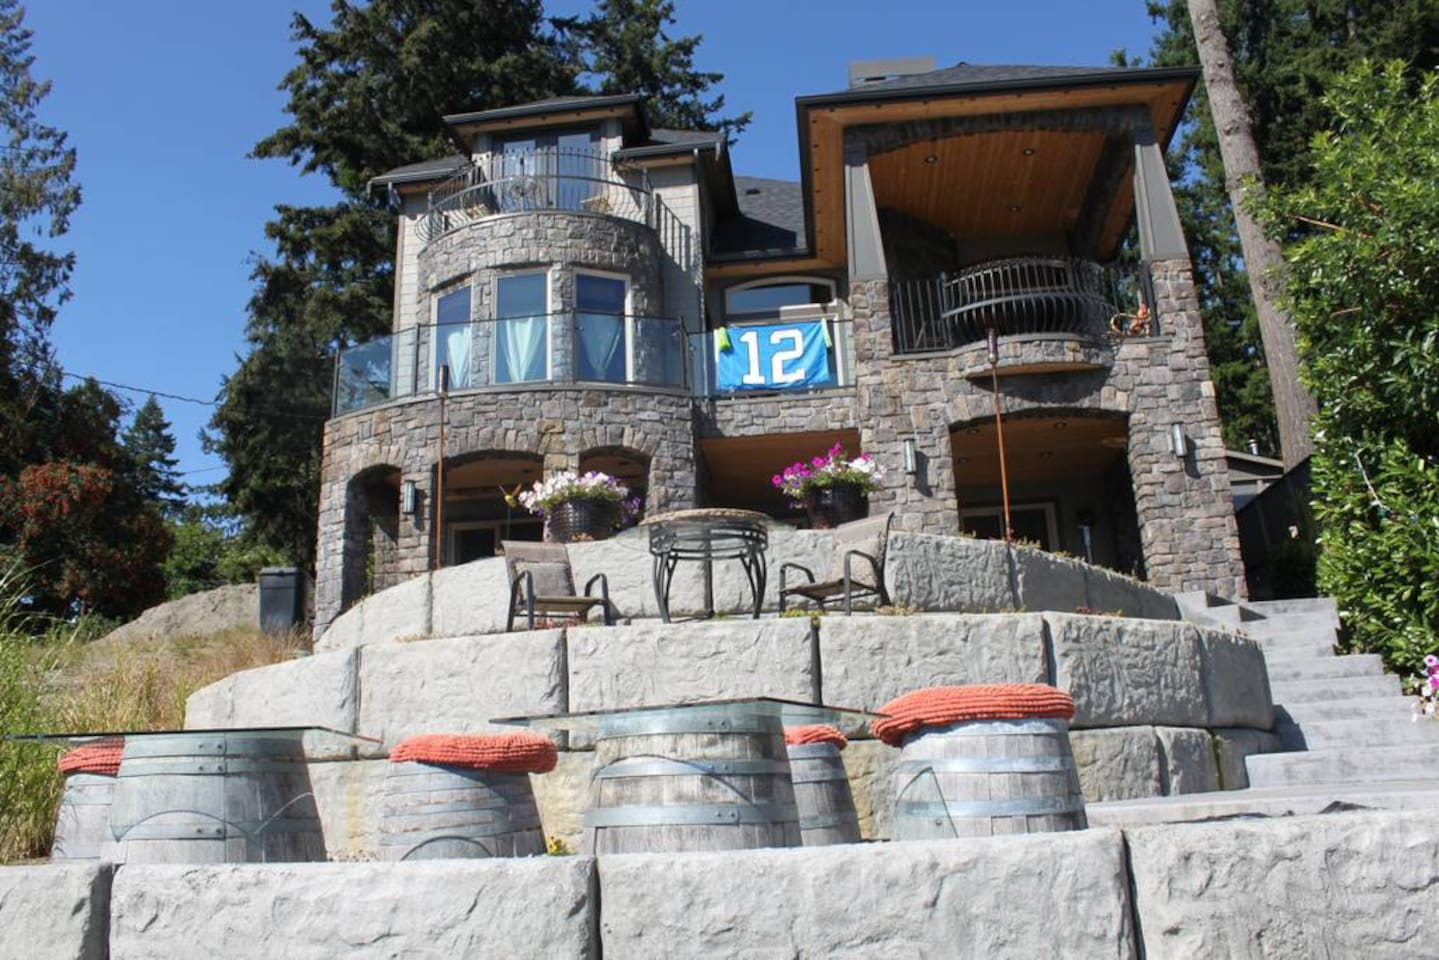 Truly Unique Castle Style Villa with Amazing Views - Balcony Suite with Partial Lake Views!